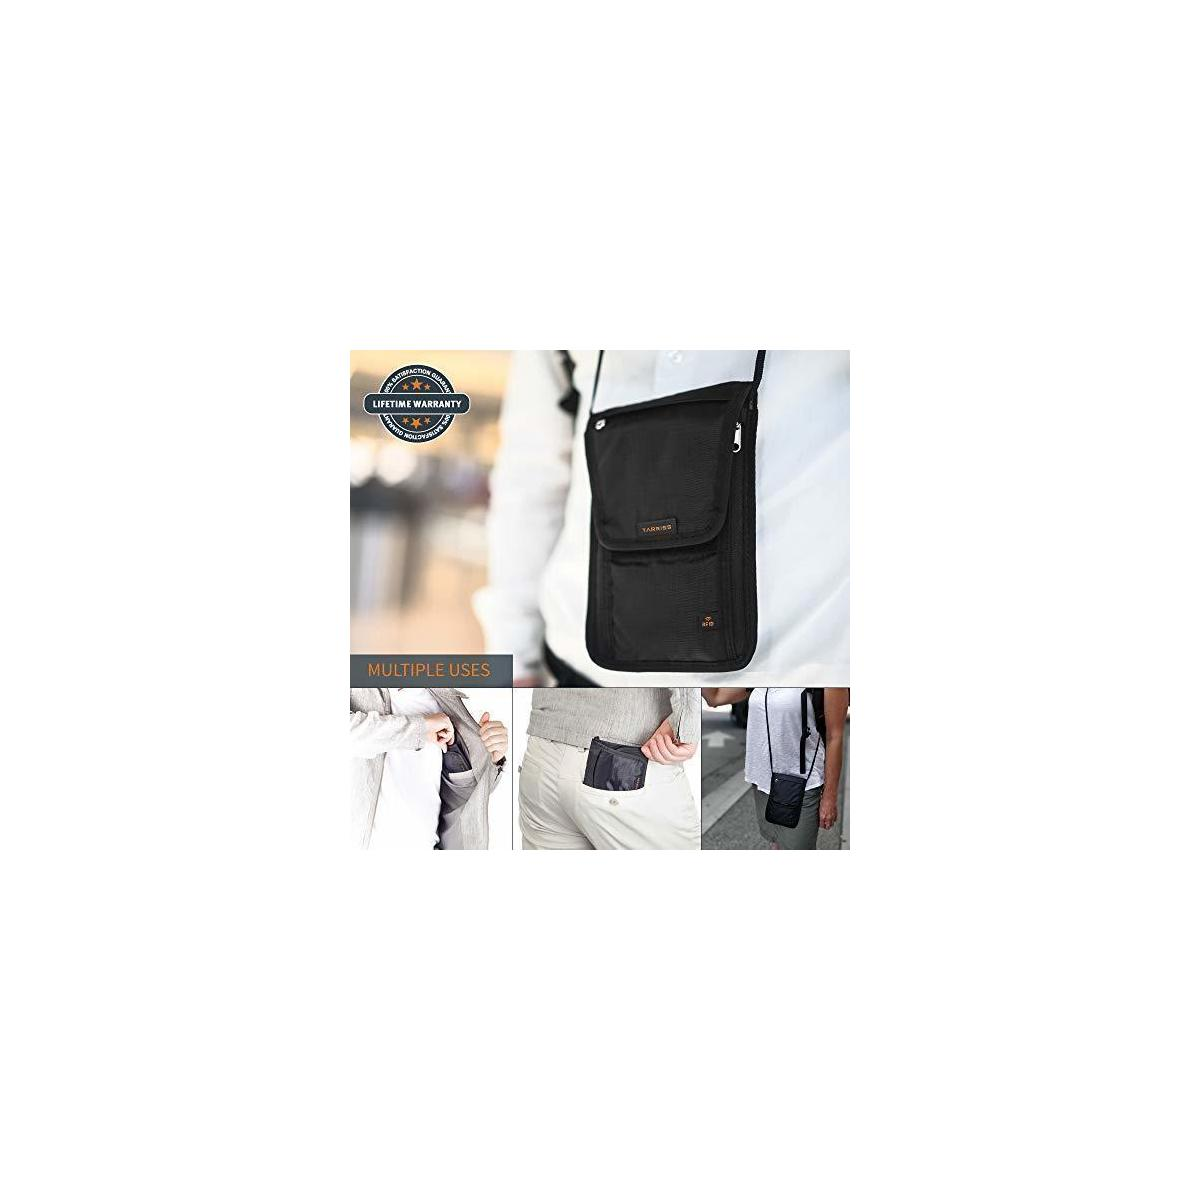 Tarriss Neck Wallet with RFID Blocking - Concealed Passport Holder and Travel Neck Pouch